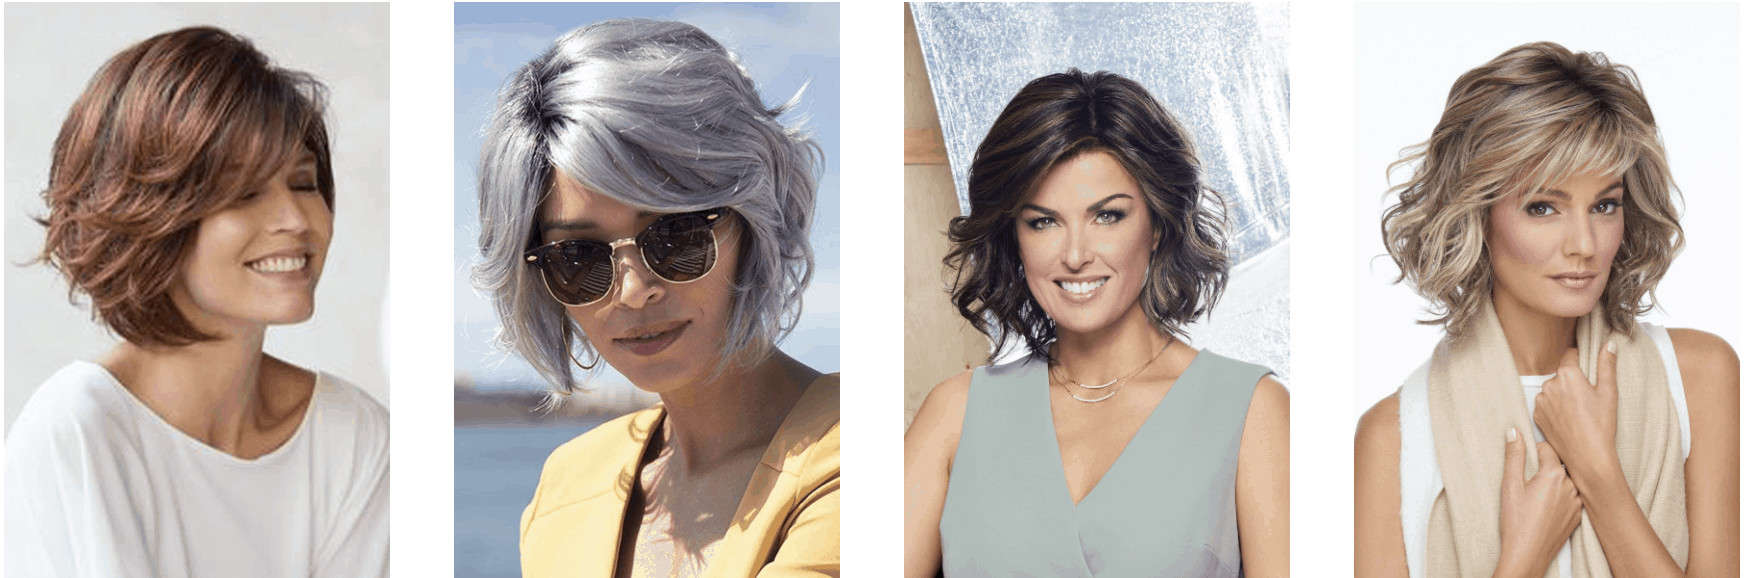 Wavy and curly hair wig examples